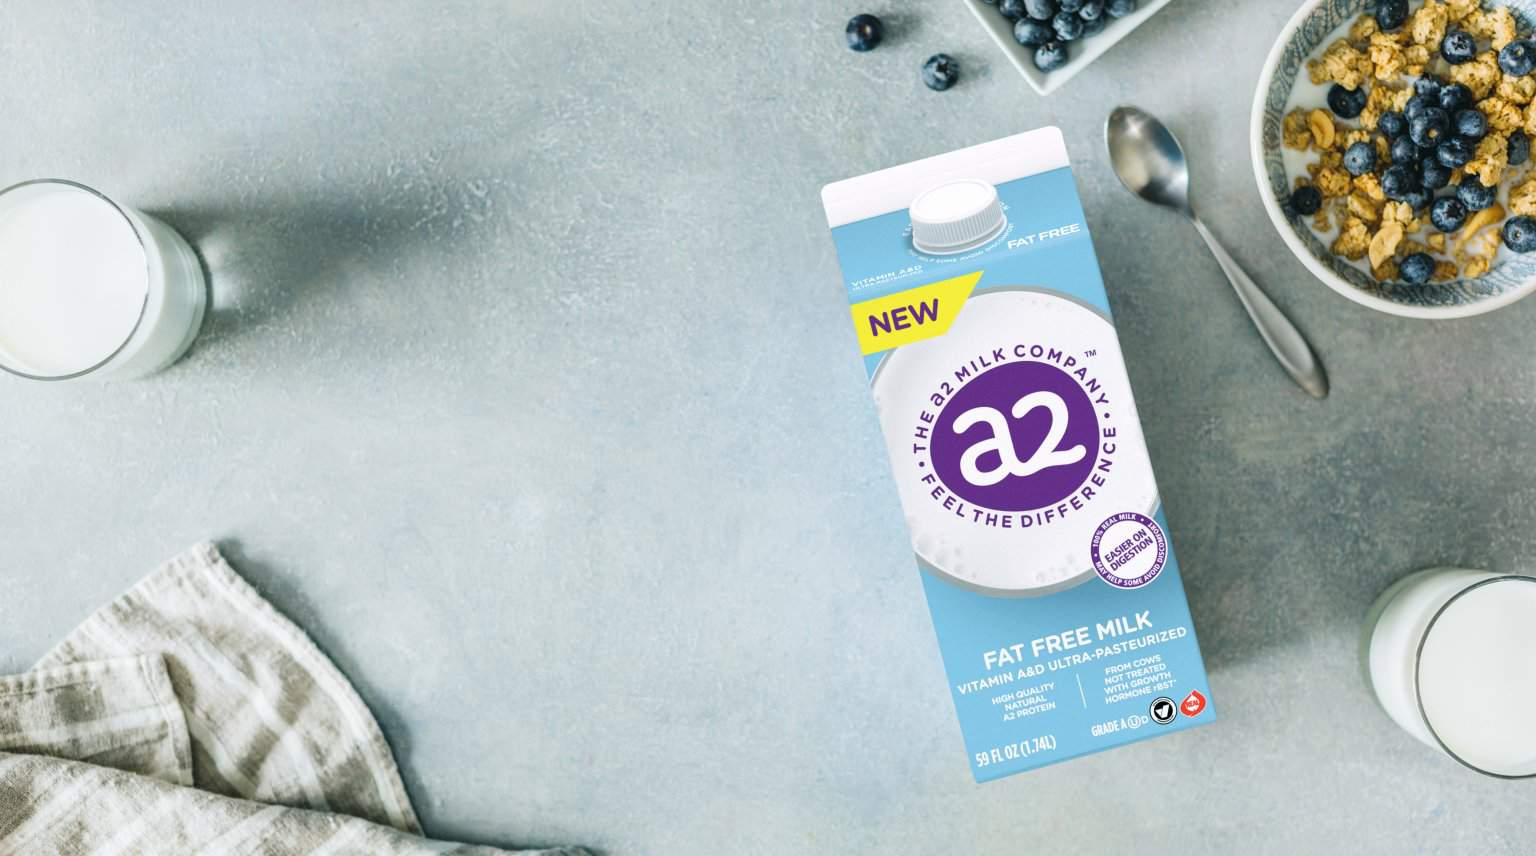 FREE Carton of a2 Fat Free Milk